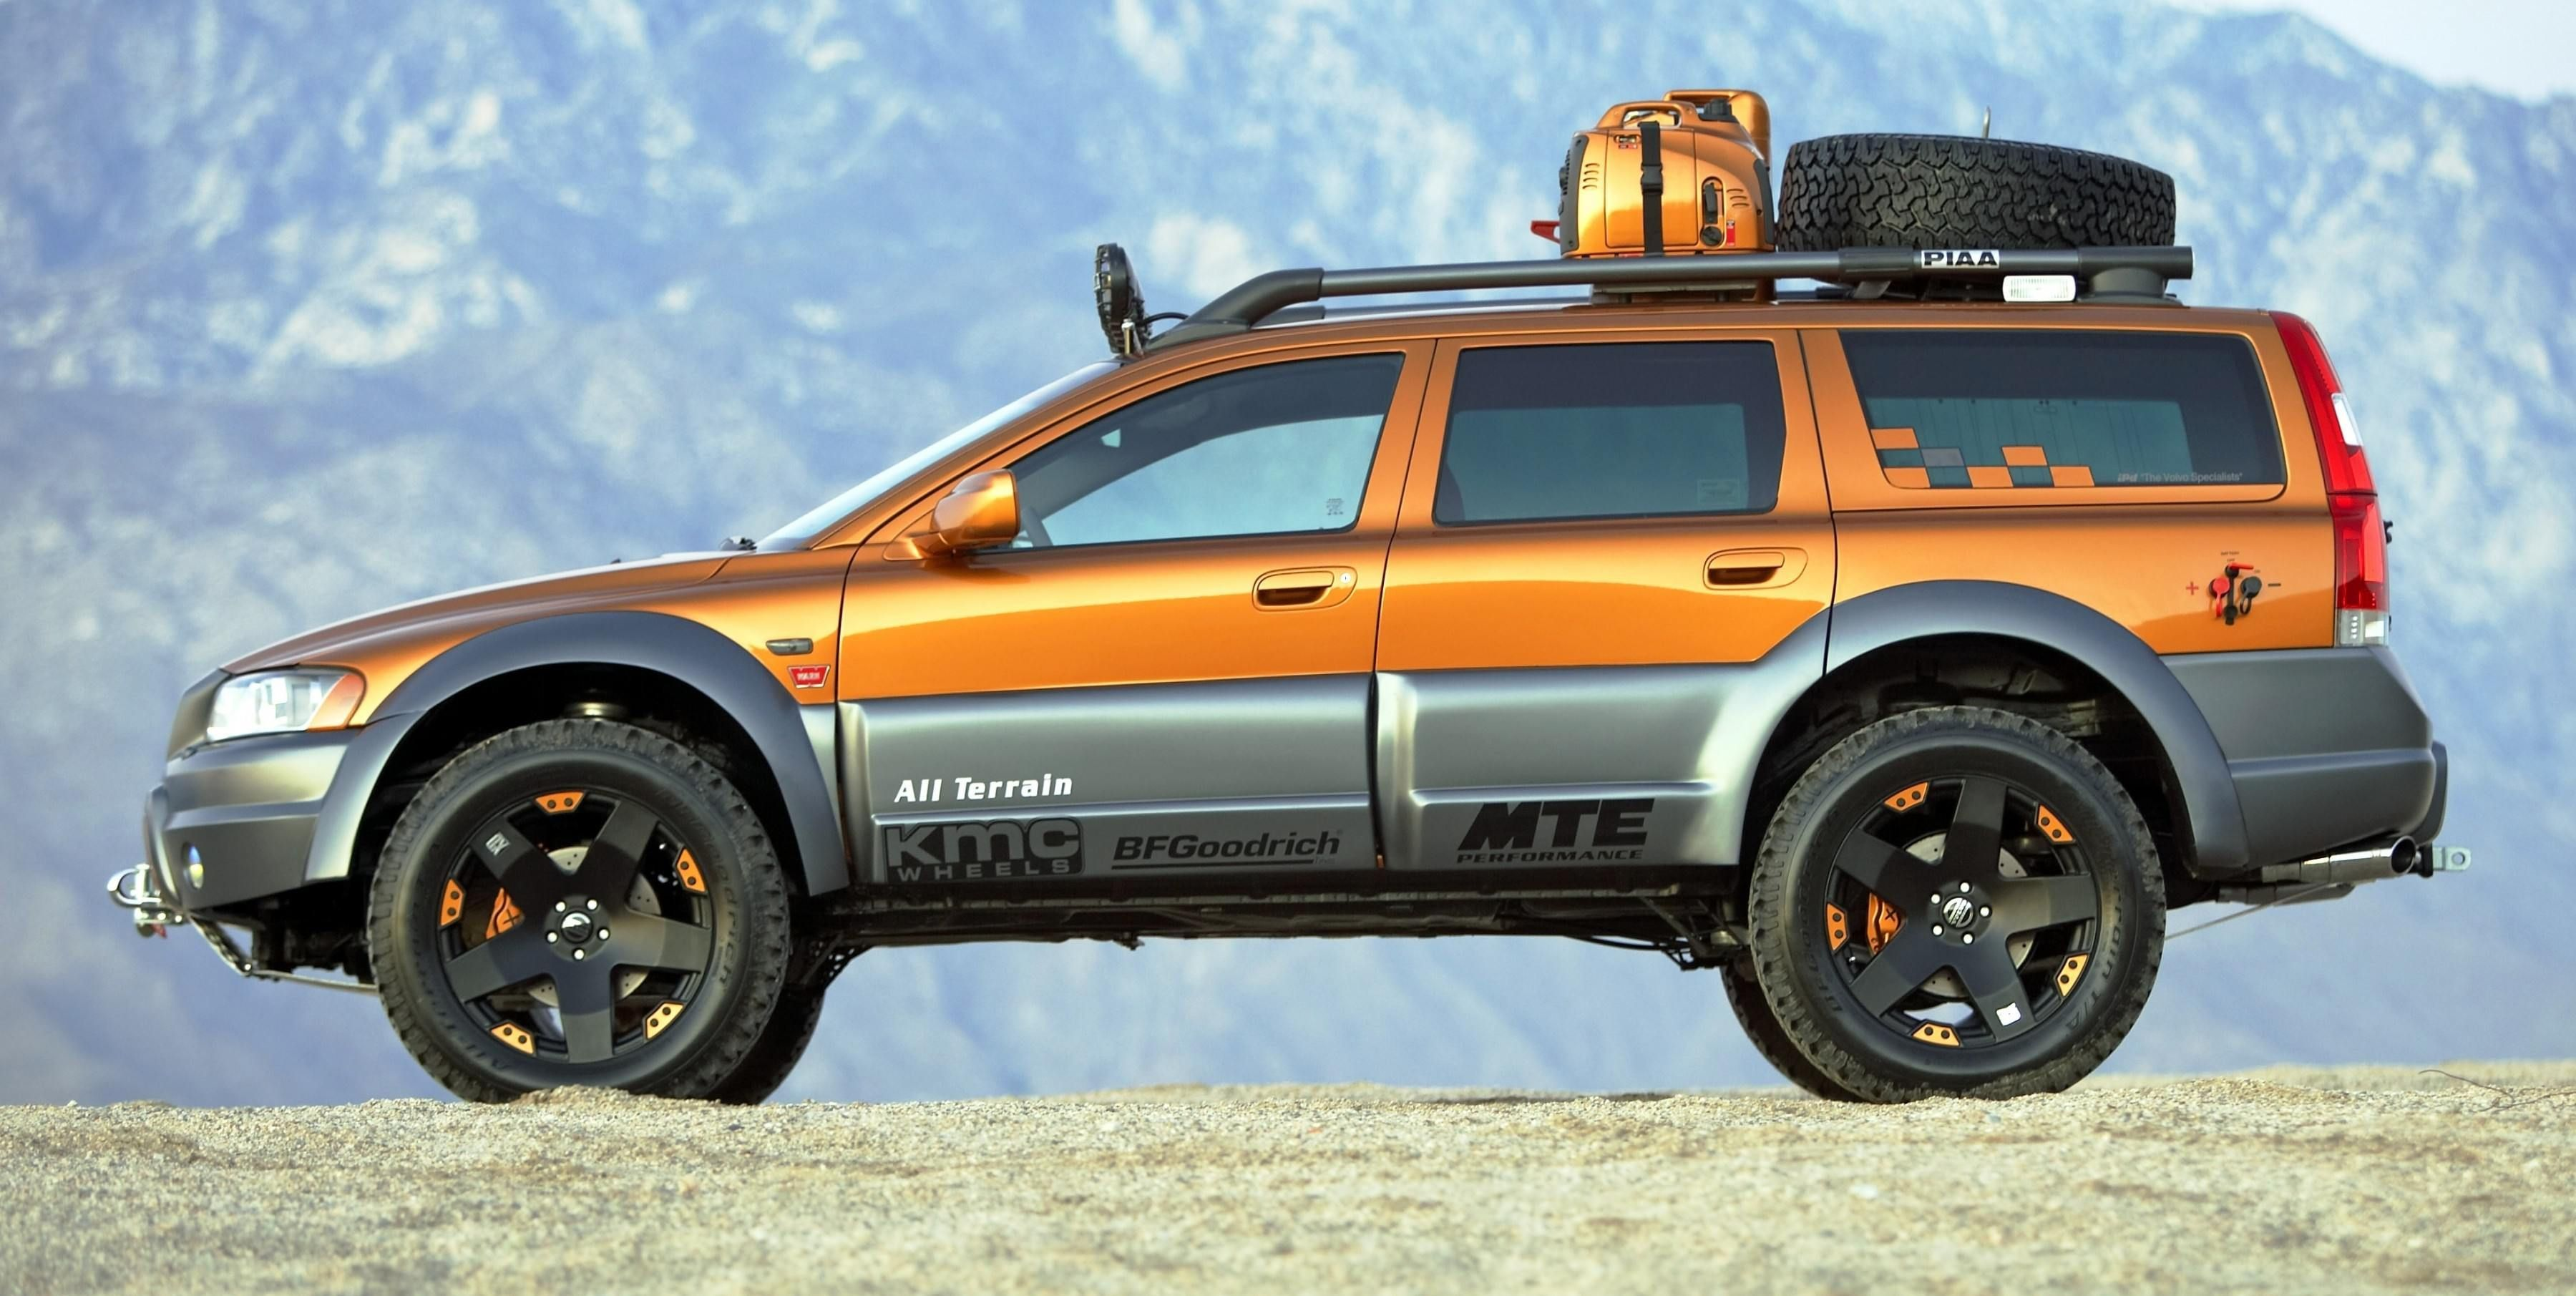 Volvo Xc70 All Terrain Concept Cars Power Cars Volvo